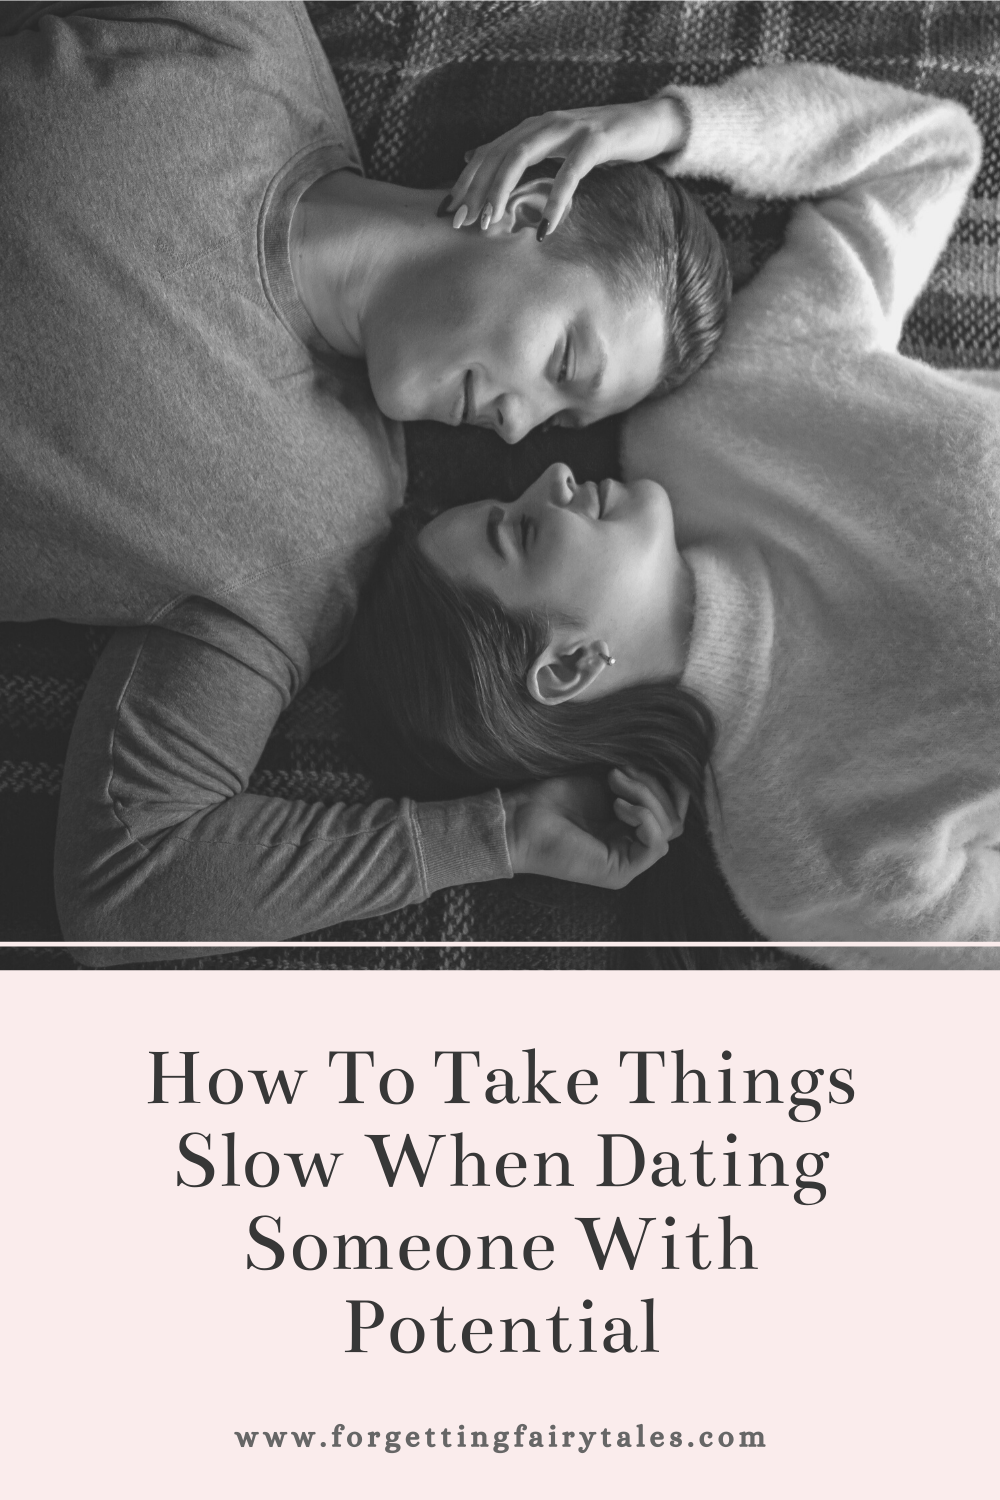 How To Take Things Slow When Dating Someone With Potential